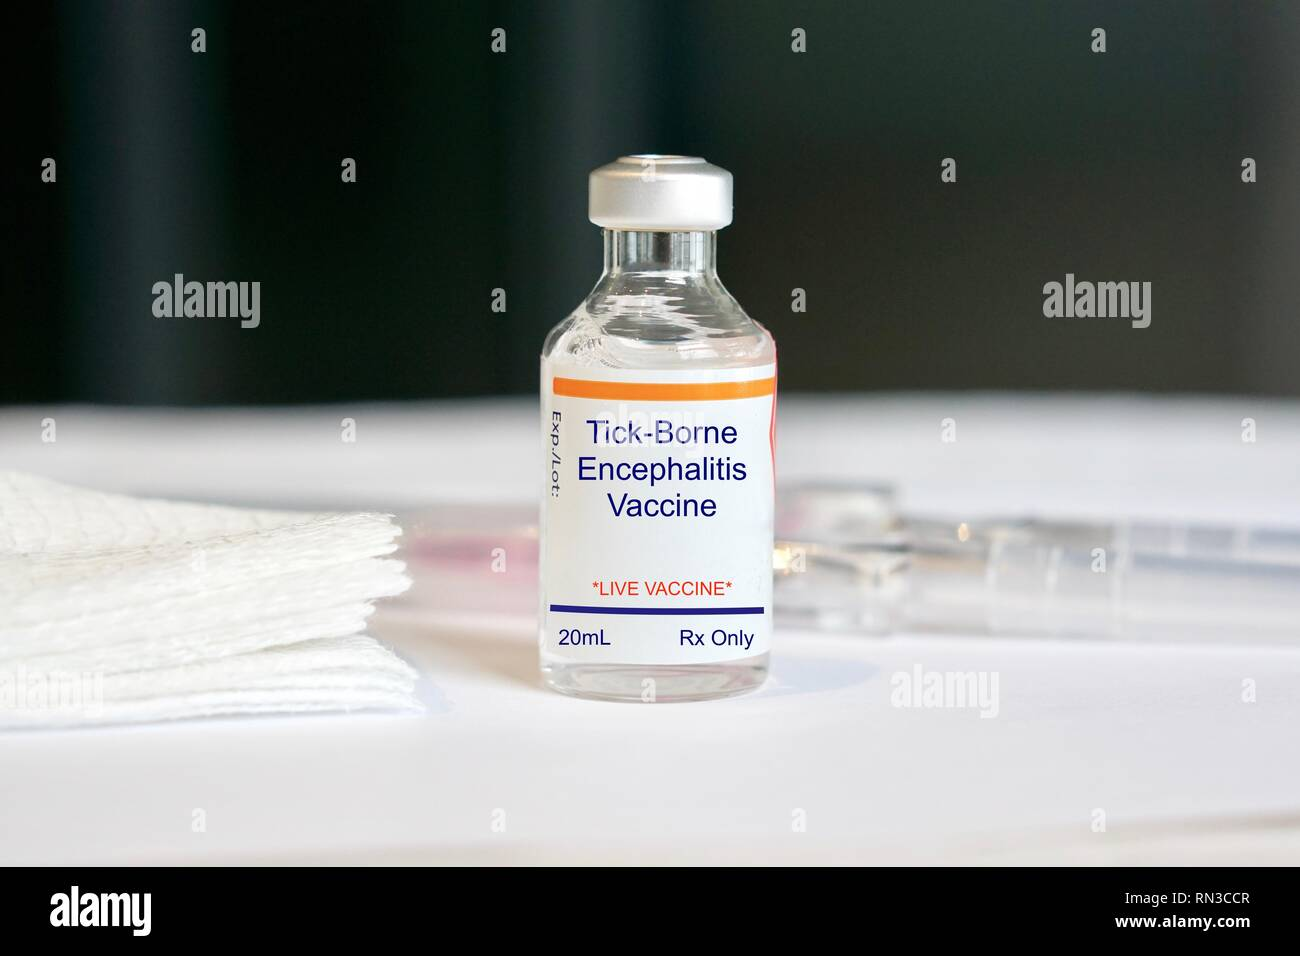 Tick one encephalitis Vaccine in a glass vial in a medical setting - Stock Image